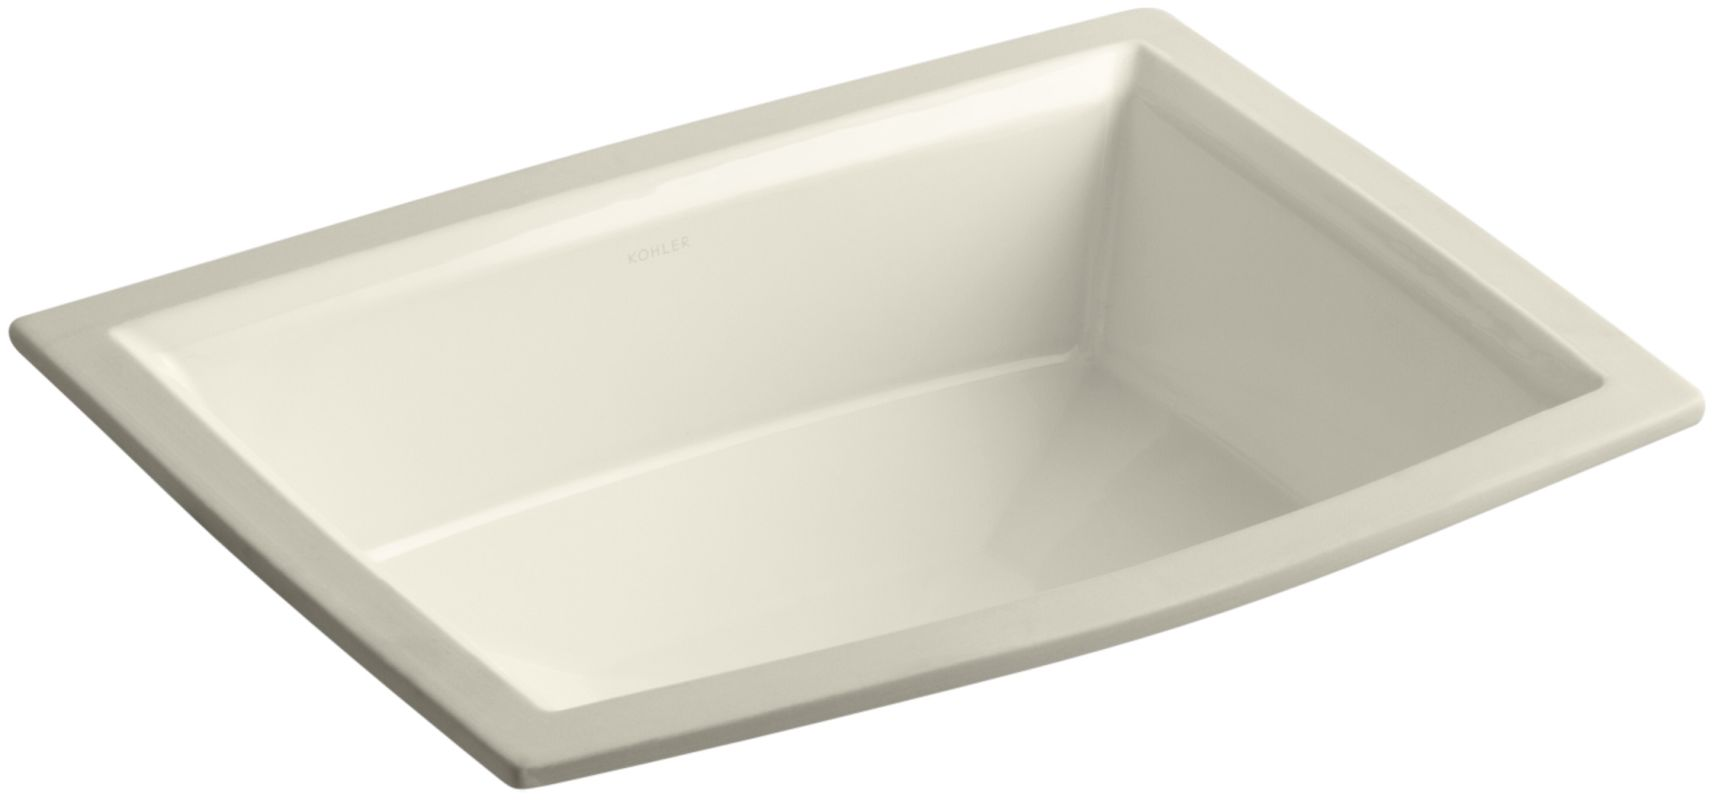 Kohler K 2355 47 Almond Archer 17 5 8 Quot Undermount Bathroom